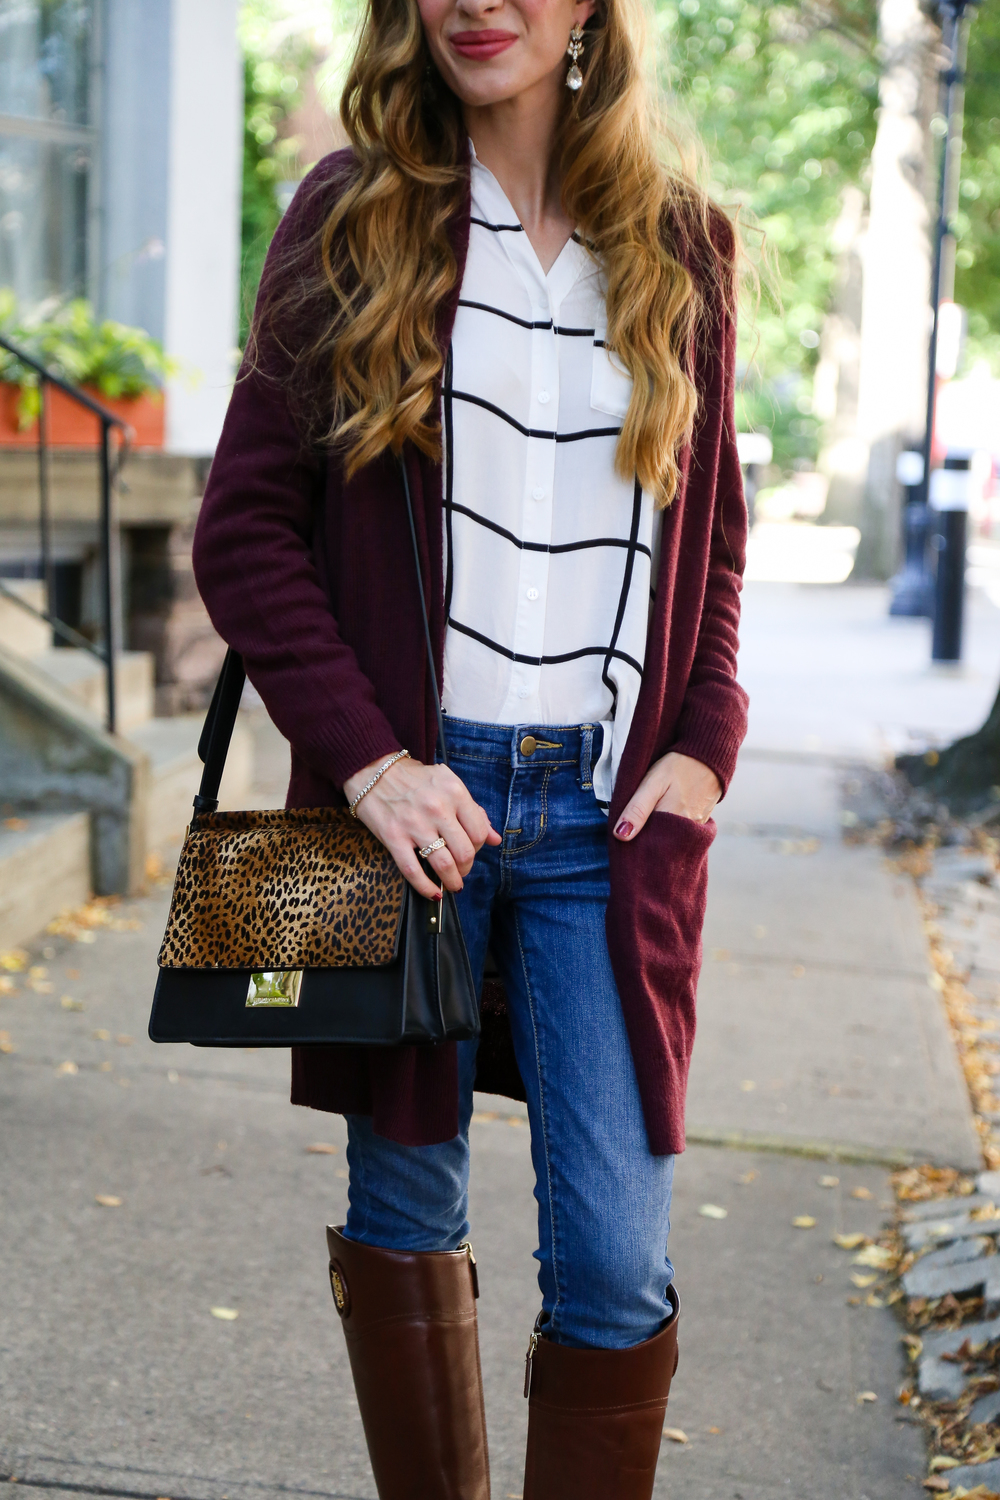 Cozy Cardi + Riding Boots- Enchanting Elegance